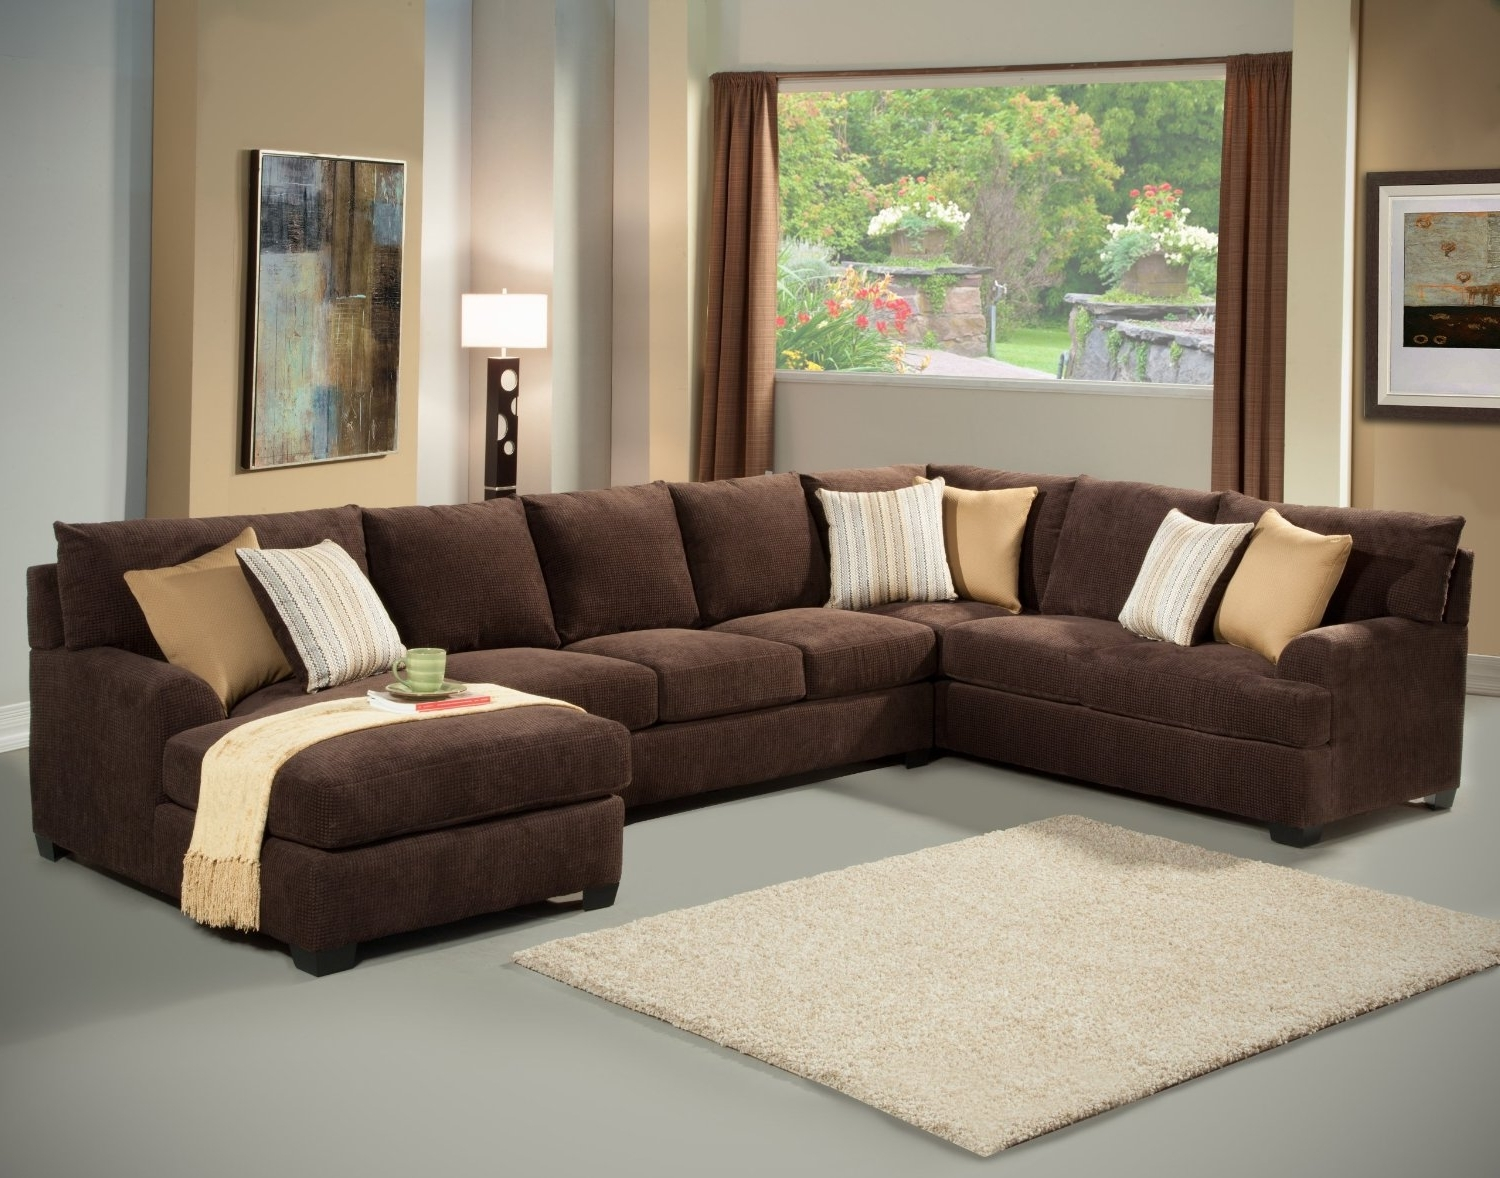 Cheap Sectional Sofas Black Leather Sectional Big Lots Sectional With Regard To 2018 Big Lots Chaises (View 14 of 15)